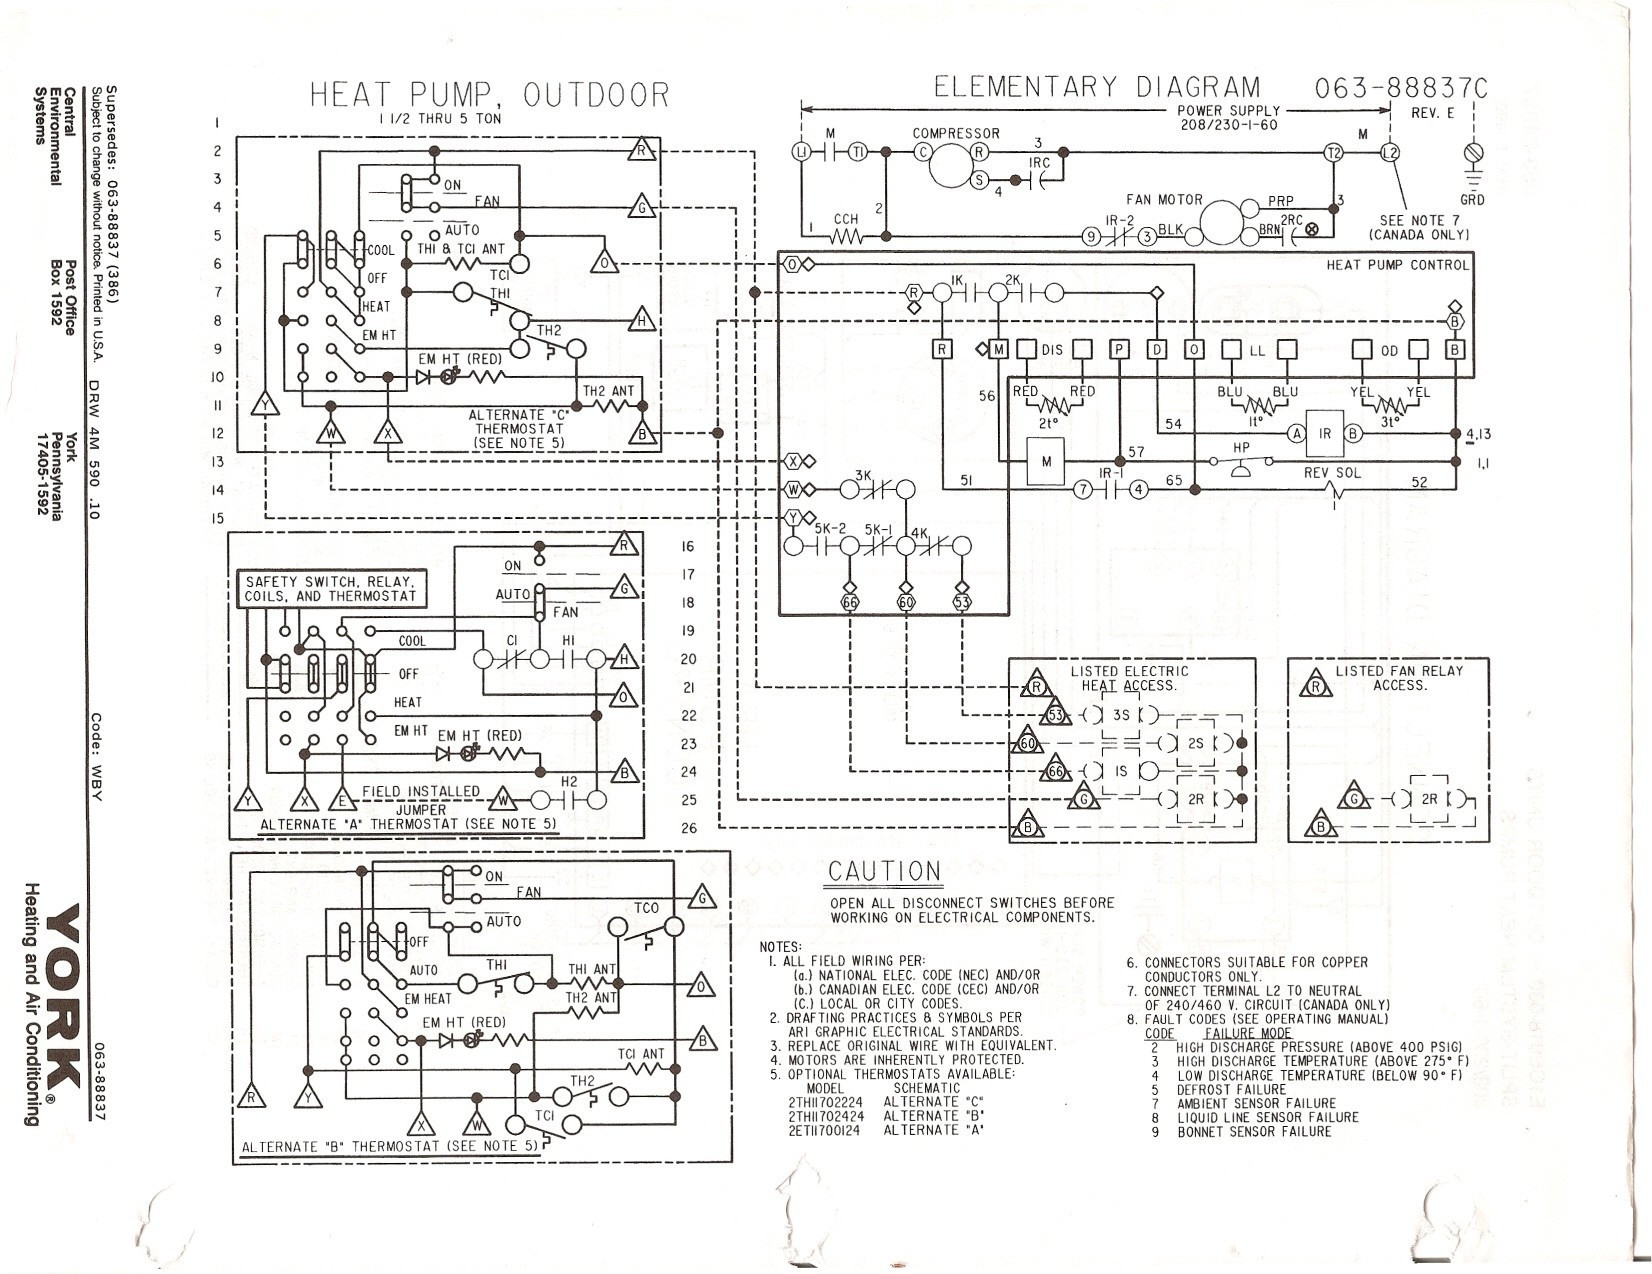 medium resolution of coleman electric heat pump wiring diagram coleman eb15b furnacemedium resolution of coleman eb17b furnace wiring diagram